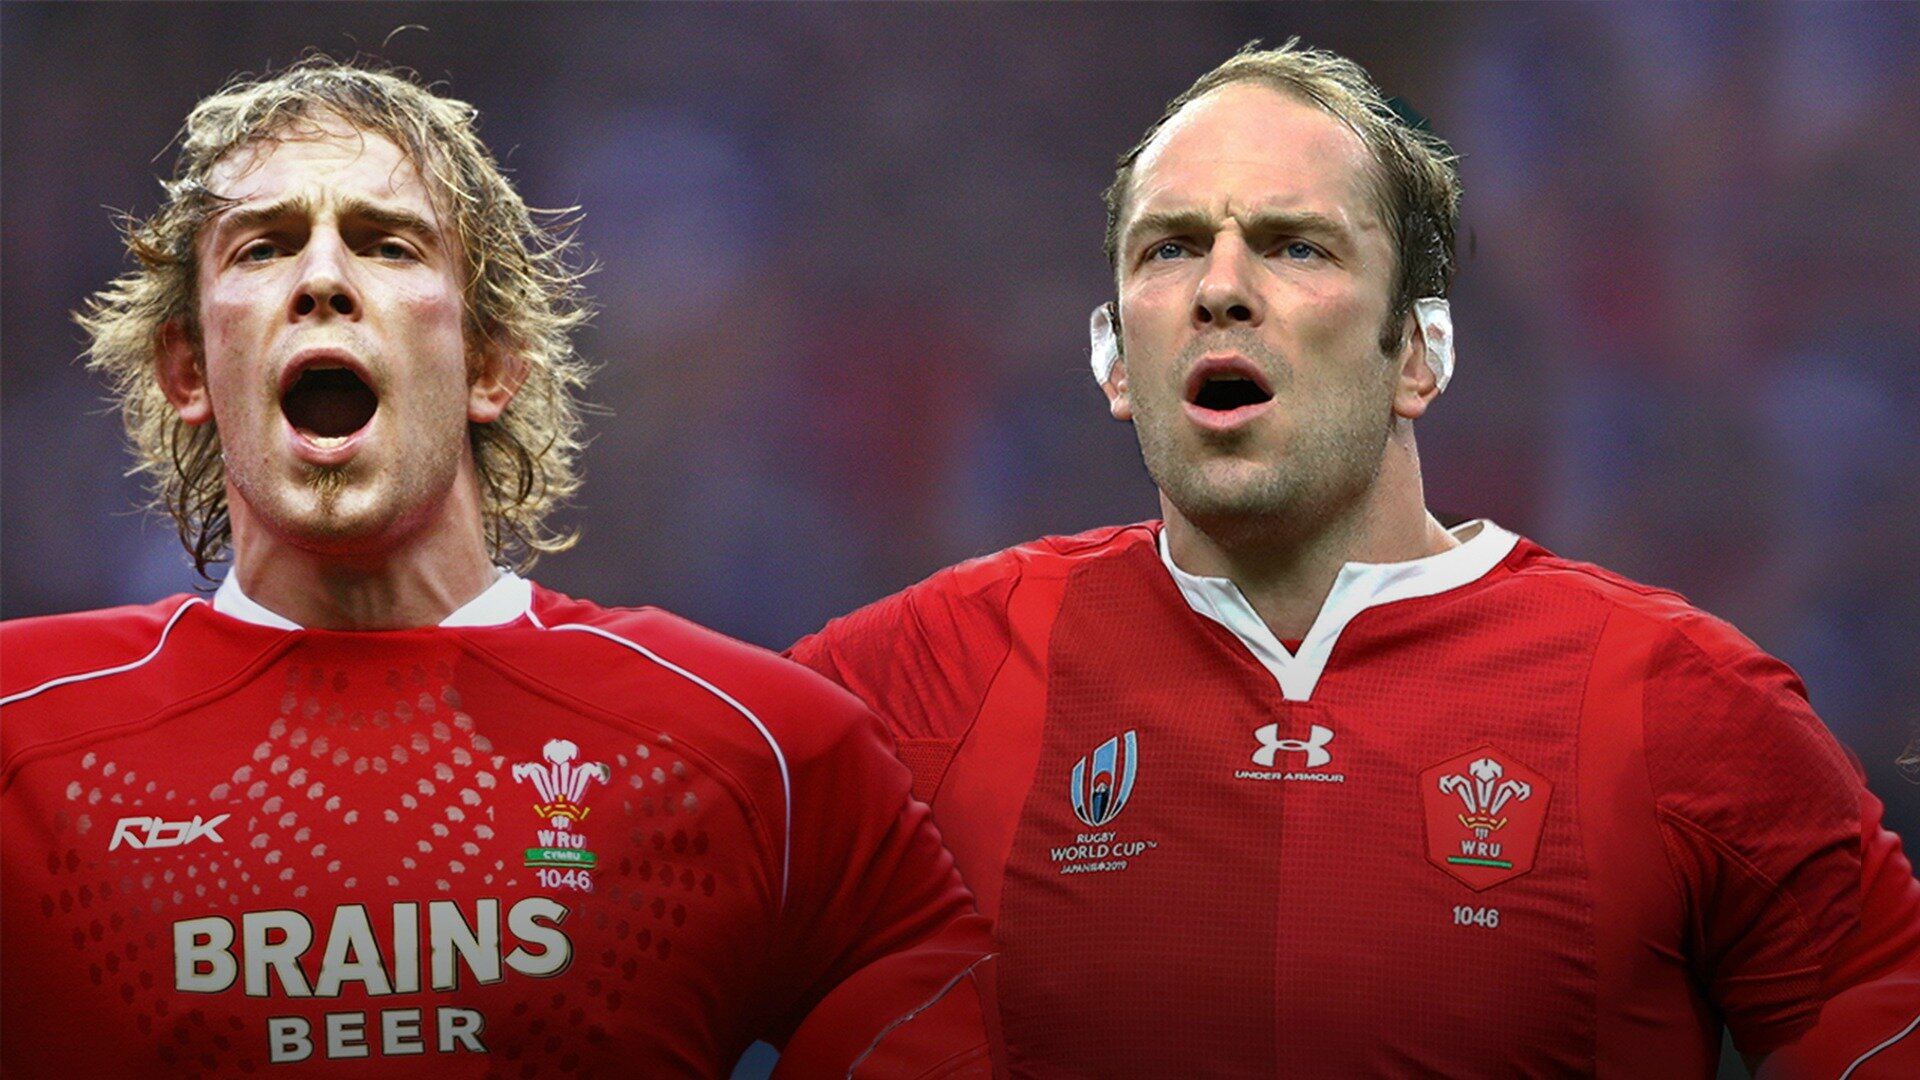 The message is writ-large: cherish Alun Wyn Jones before he unlaces his size 15s for the last time